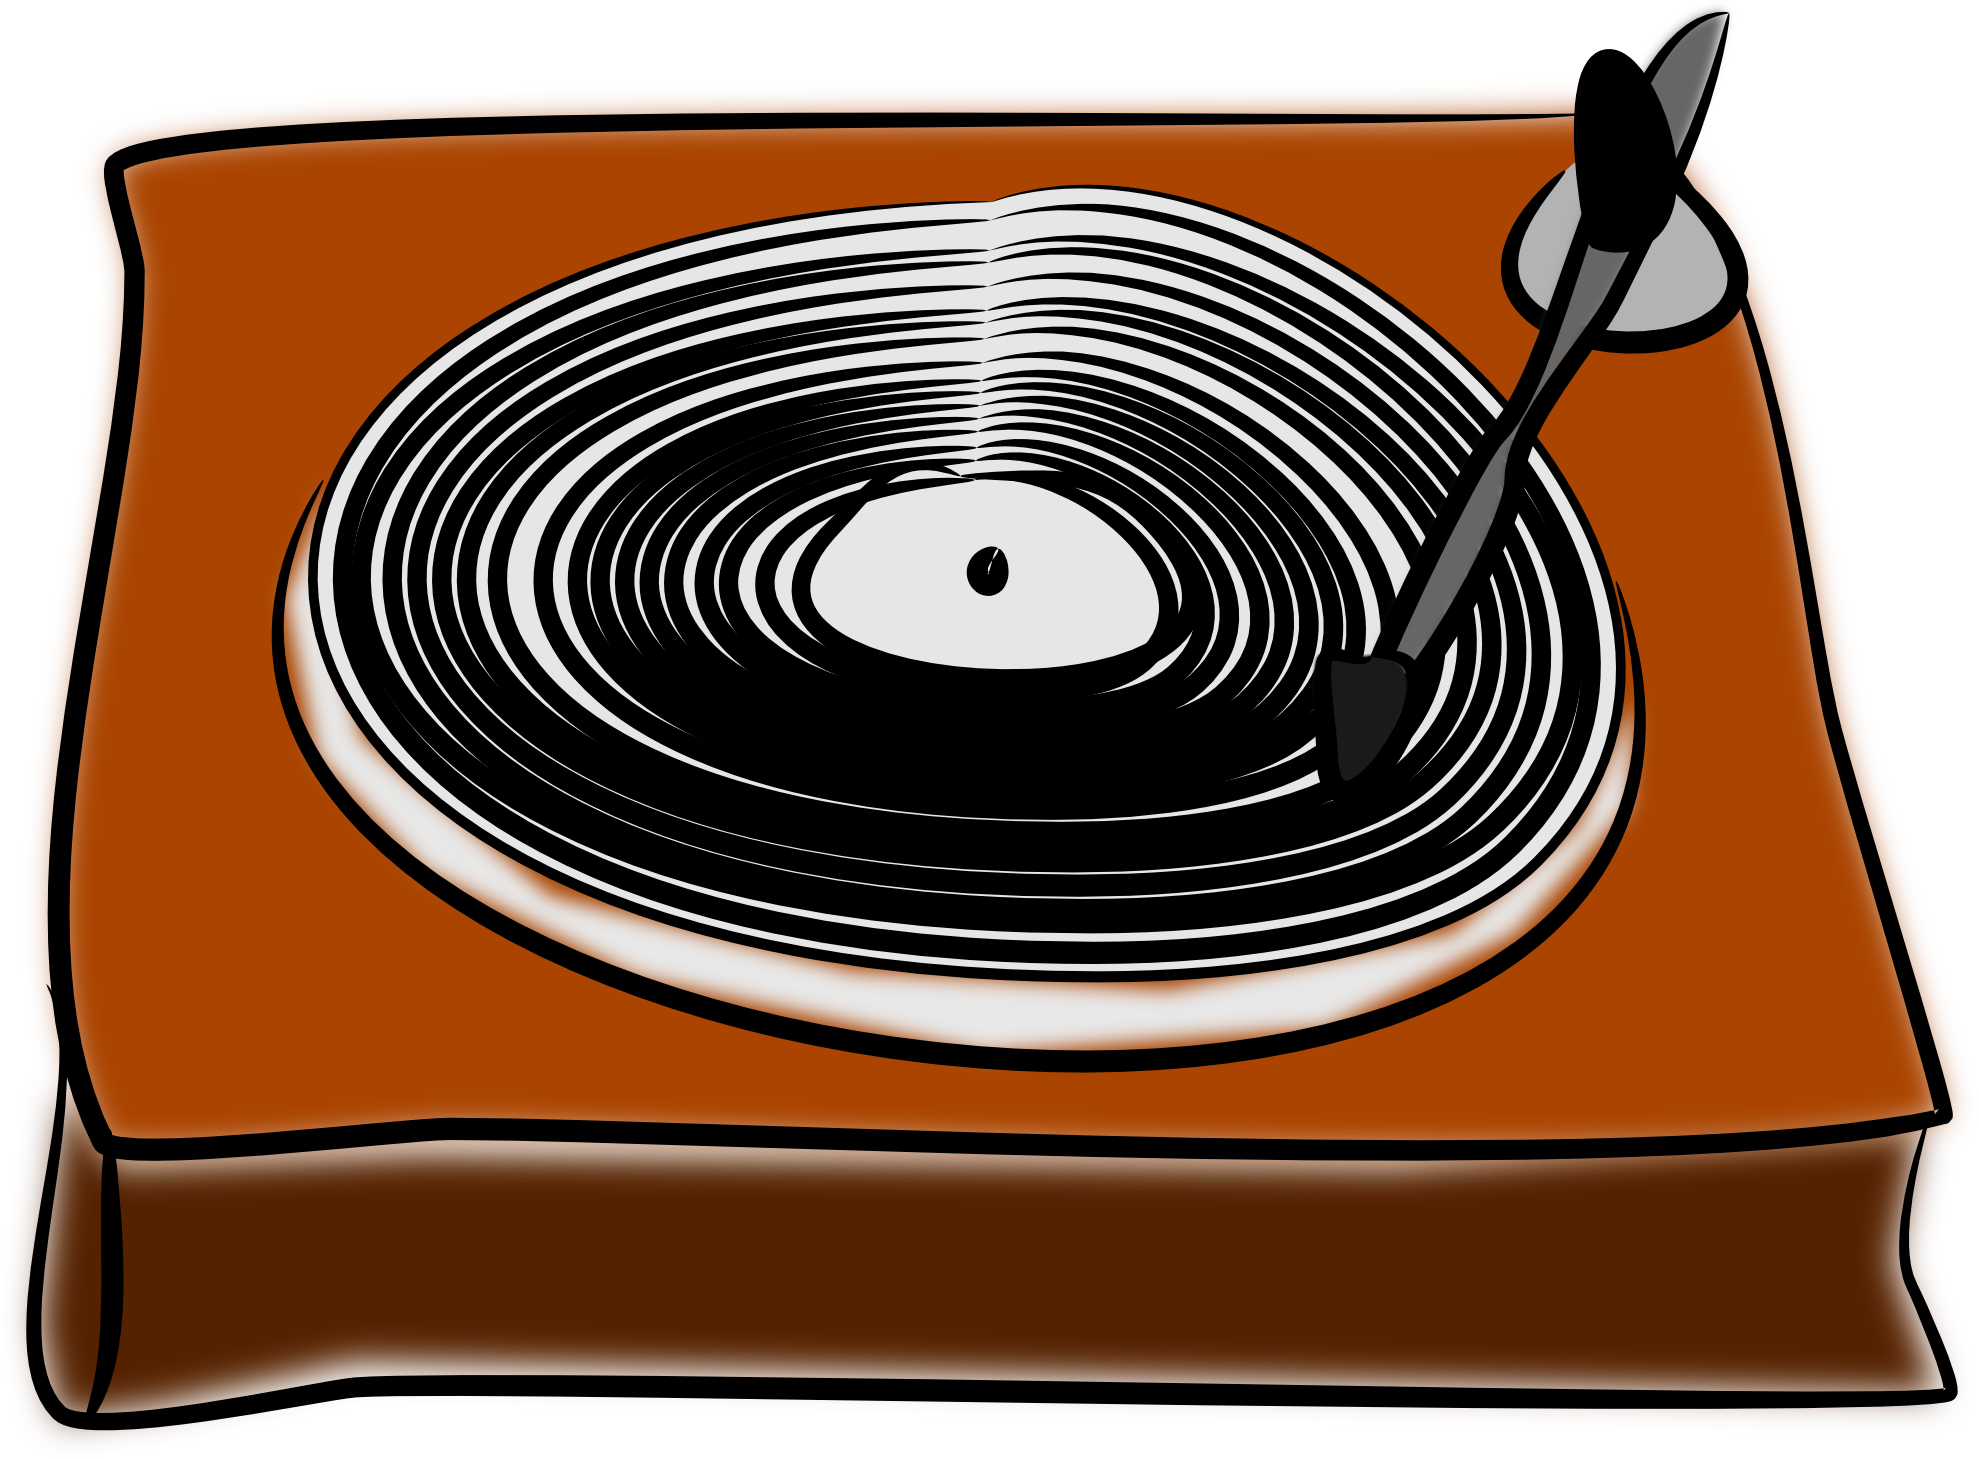 Free Phonograph Png, Download Free Clip Art, Free Clip Art.